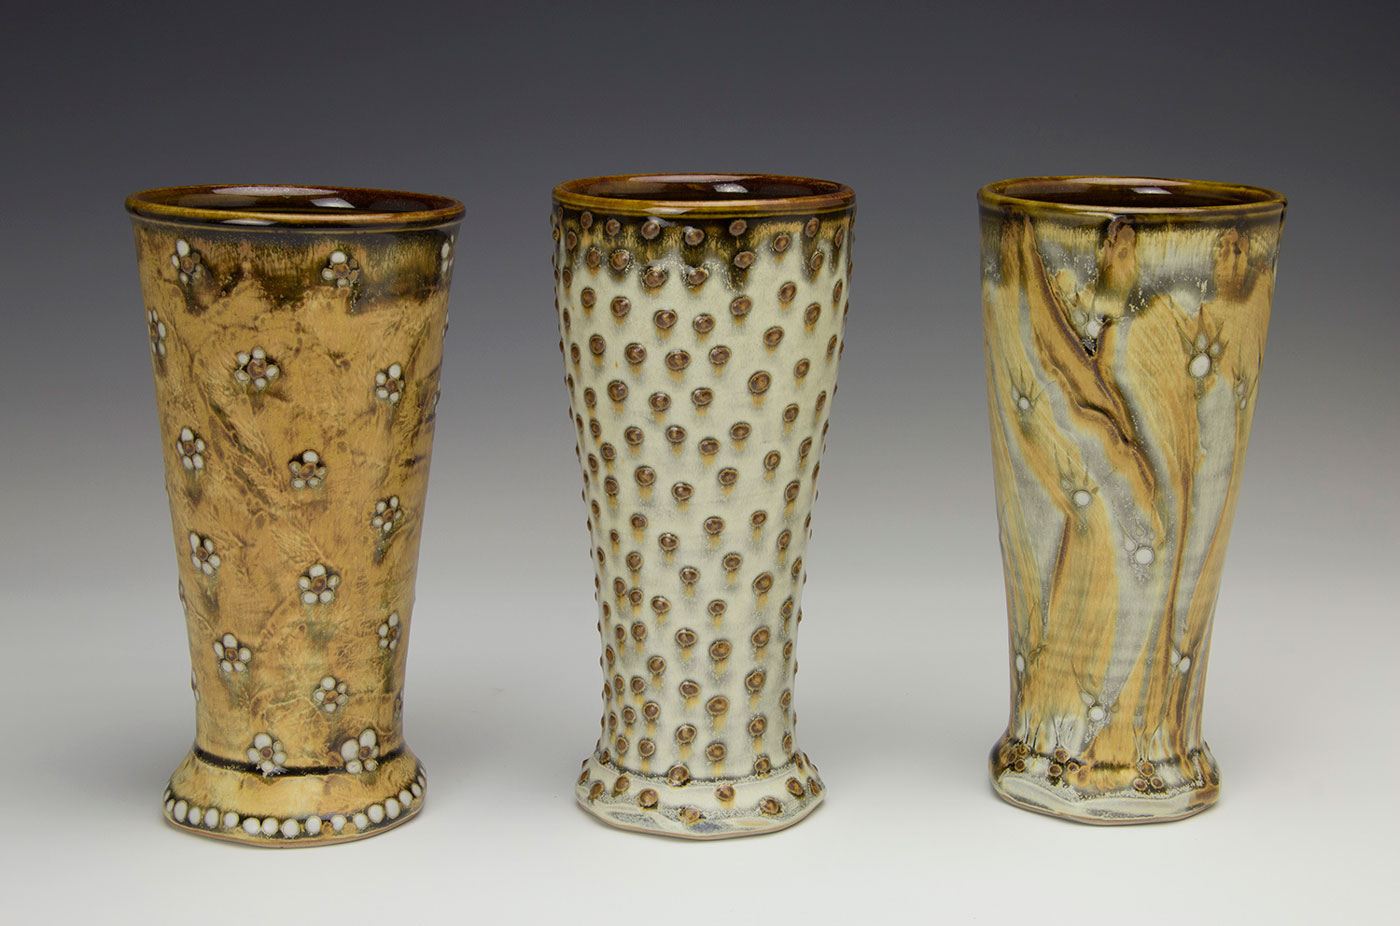 Tumbler-Trio-Samantha-Henneke-Bulldog-Pottery-Seagrove-North-Carolina.jpg